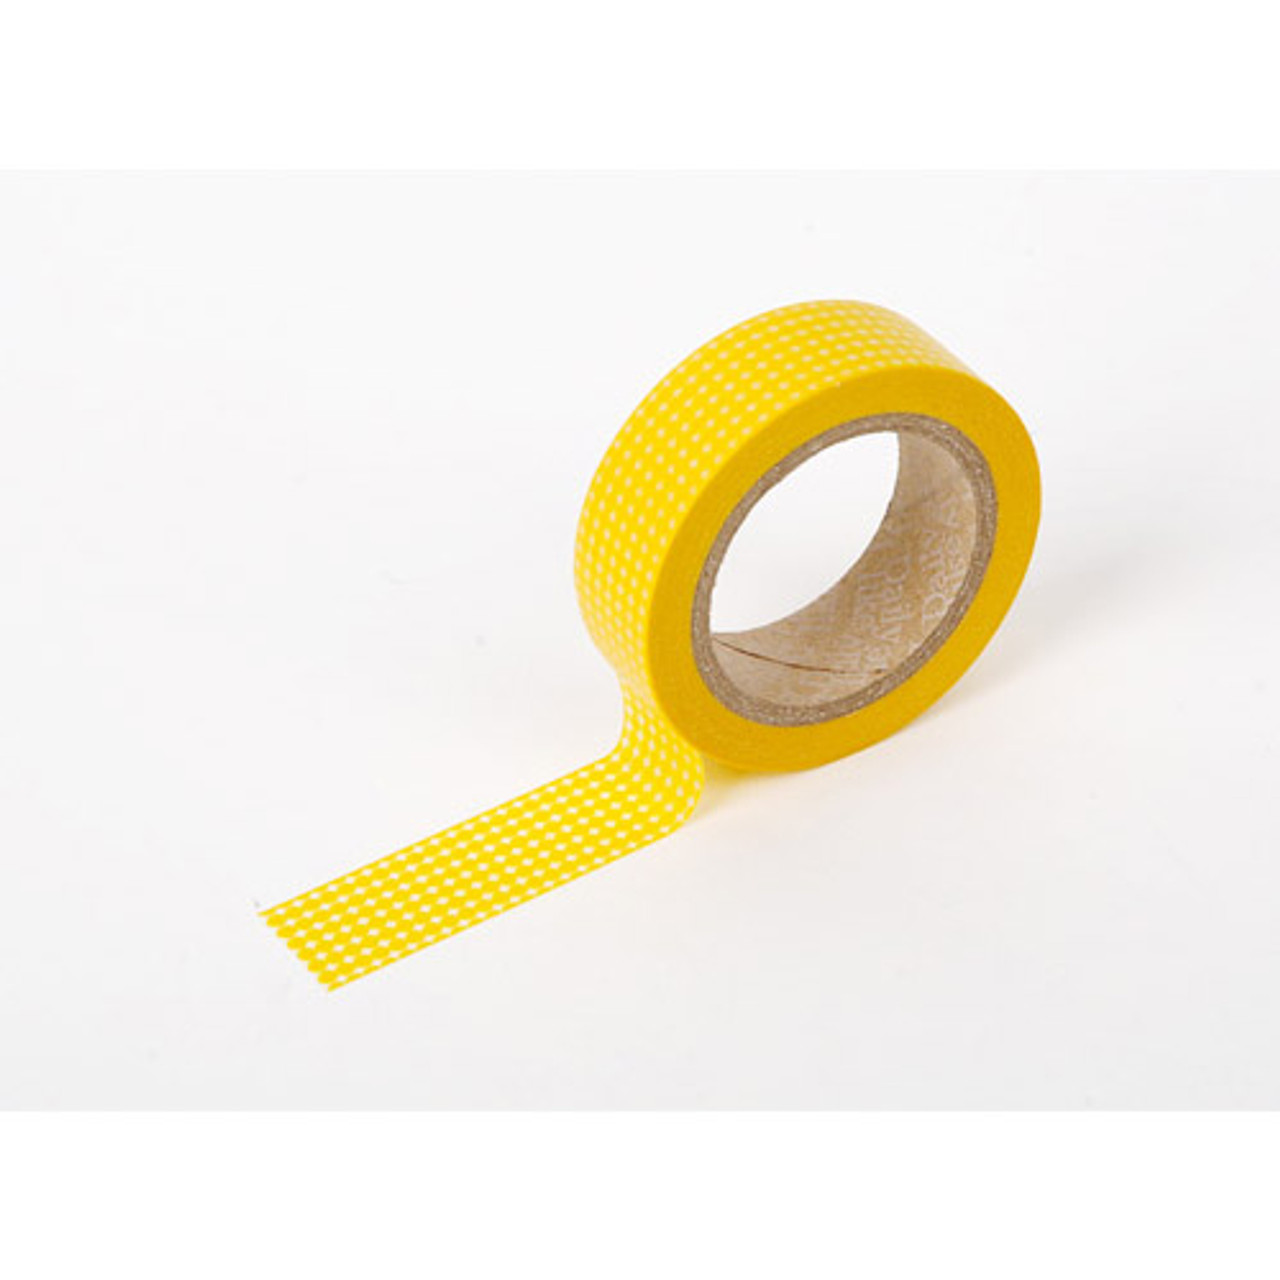 dailylike deco masking tape single yellow dot fallindesign. Black Bedroom Furniture Sets. Home Design Ideas